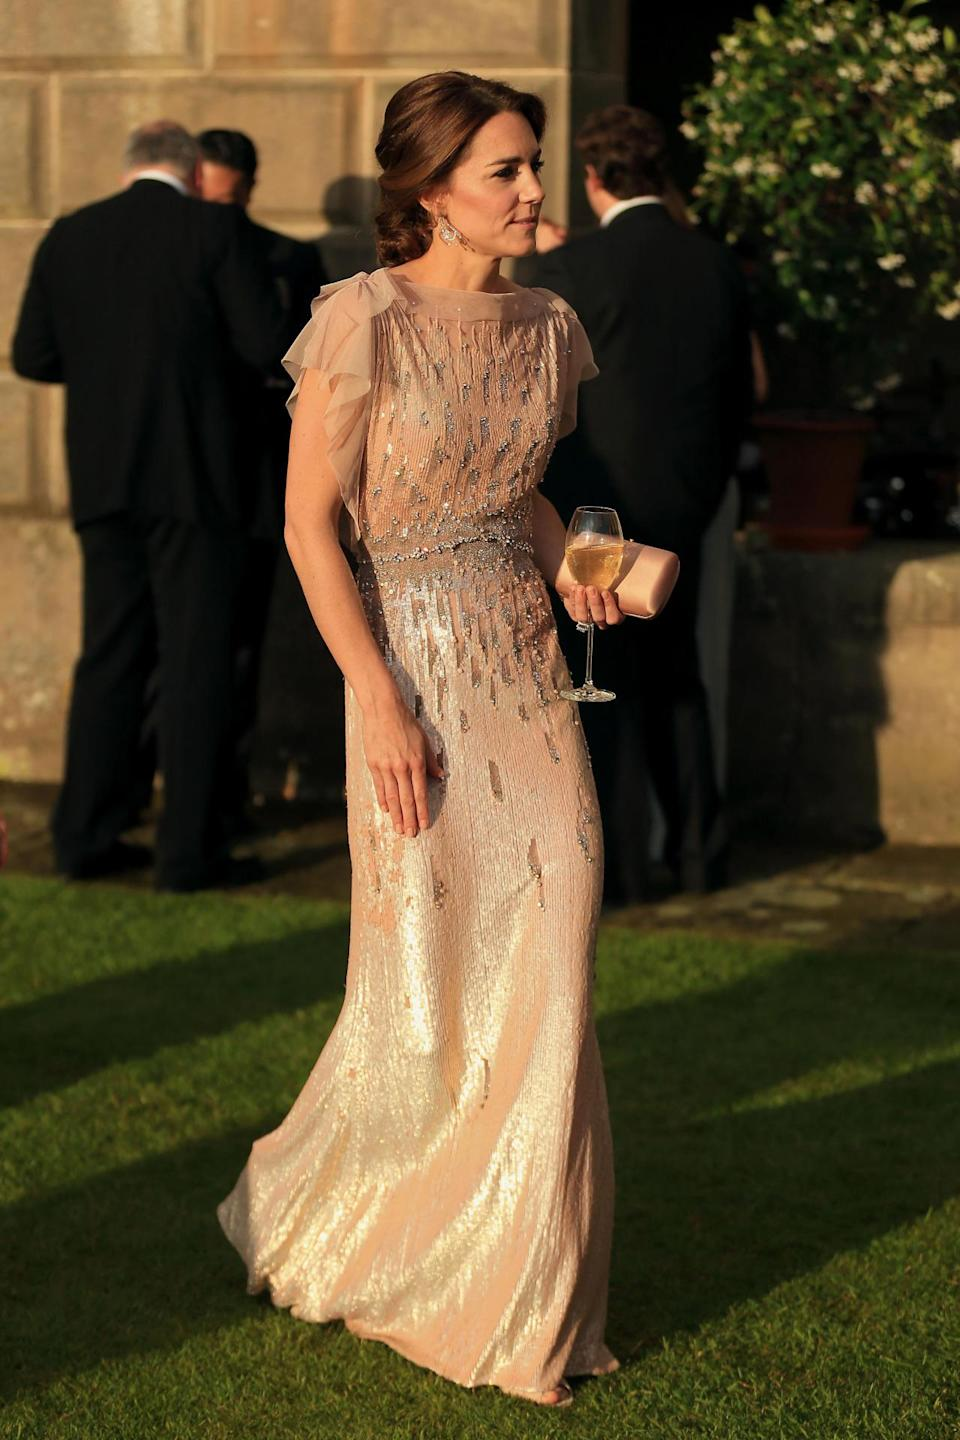 <p>Kate looked stunning in a champagne Jenny Packham gown for a gala dinner in Norfolk. Recycling a look she first wore in 2011, the Duchess's accessories included a dusky pink Prada clutch, L.K. Bennett sandals and diamond earrings loaned to her by the Queen.</p><p><i>[Photo: PA]</i></p>